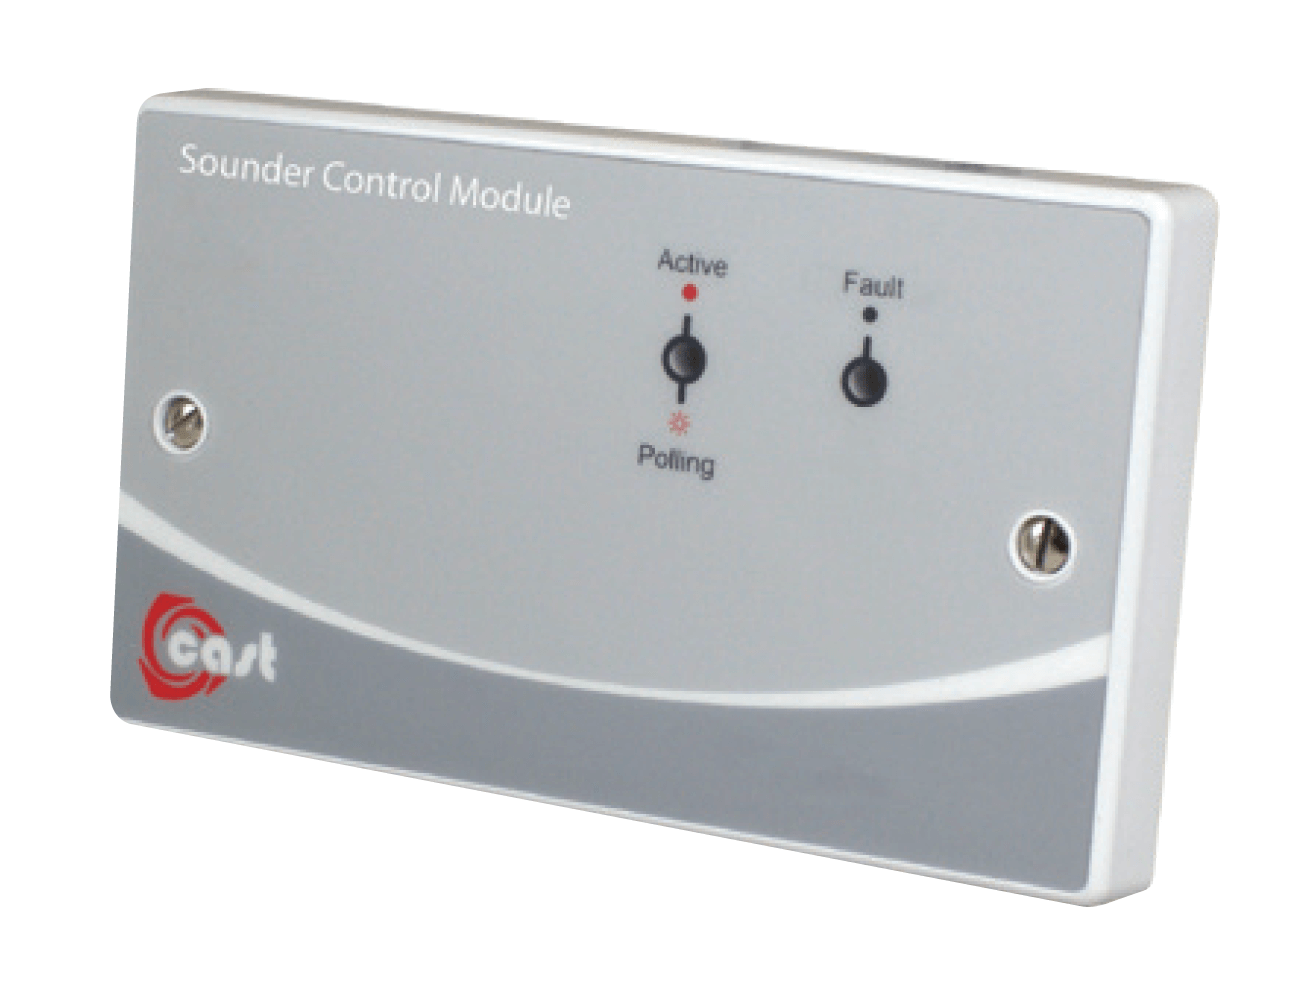 Picture of a sounder control module